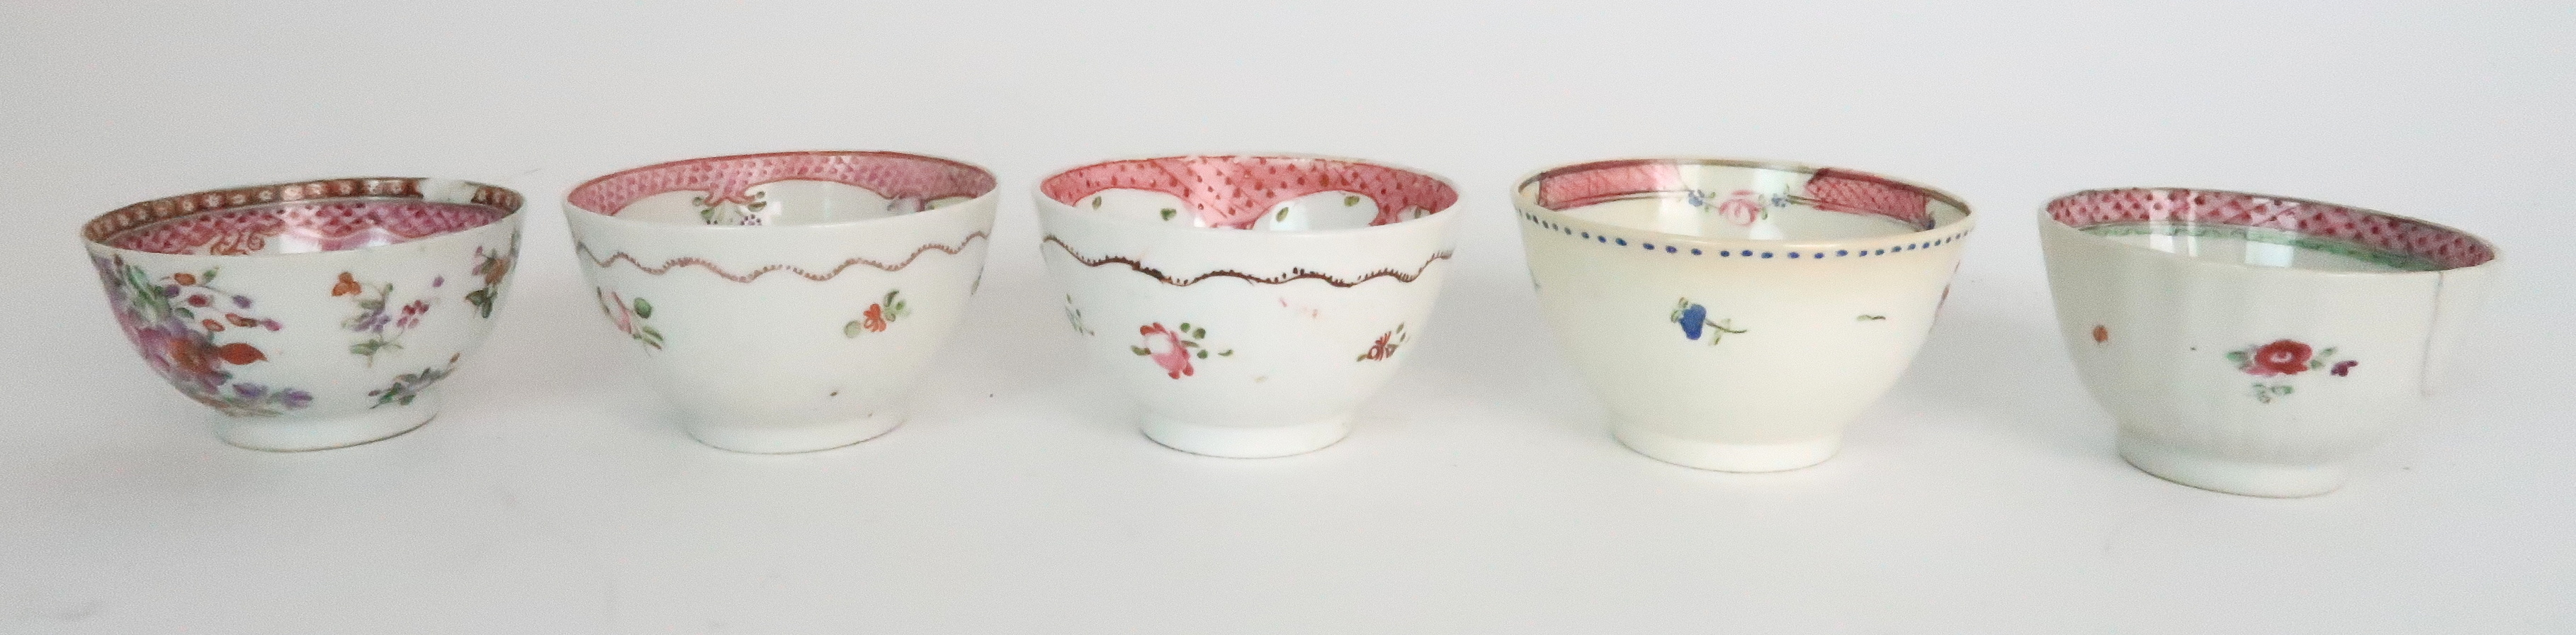 A COLLECTION OF TEA BOWLS AND SAUCERS each with pink scale and floral decoration including New Hall; - Image 9 of 12